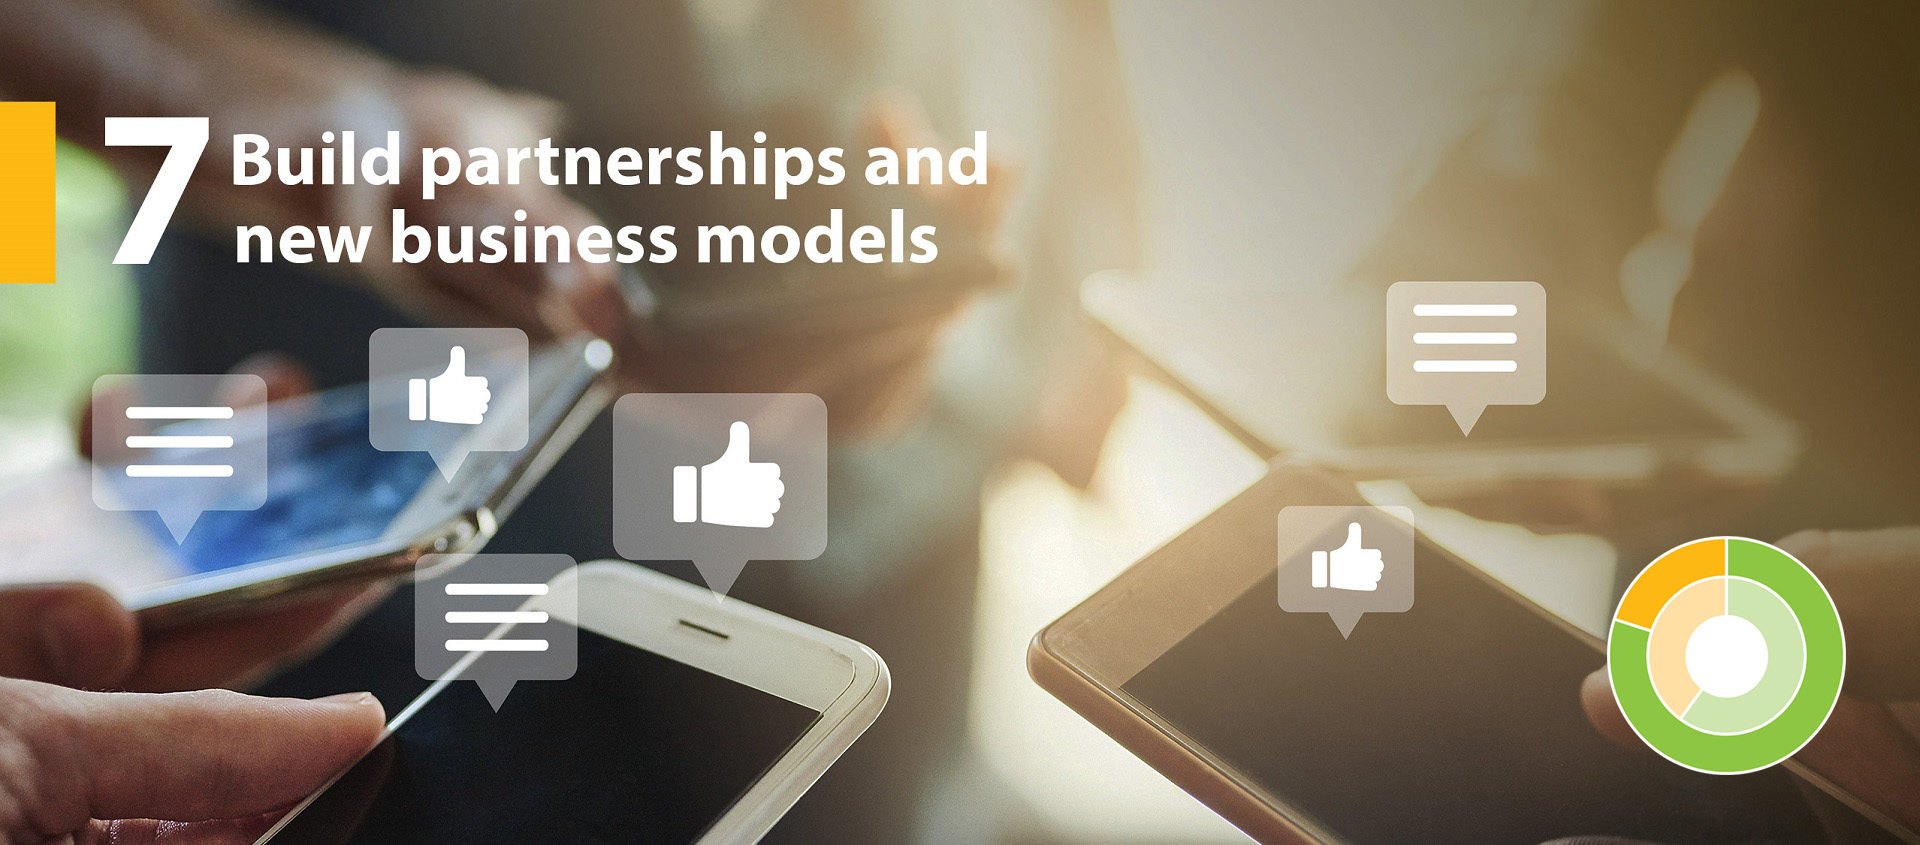 TRCA strategic goal 7 - Build partnerships and new business models